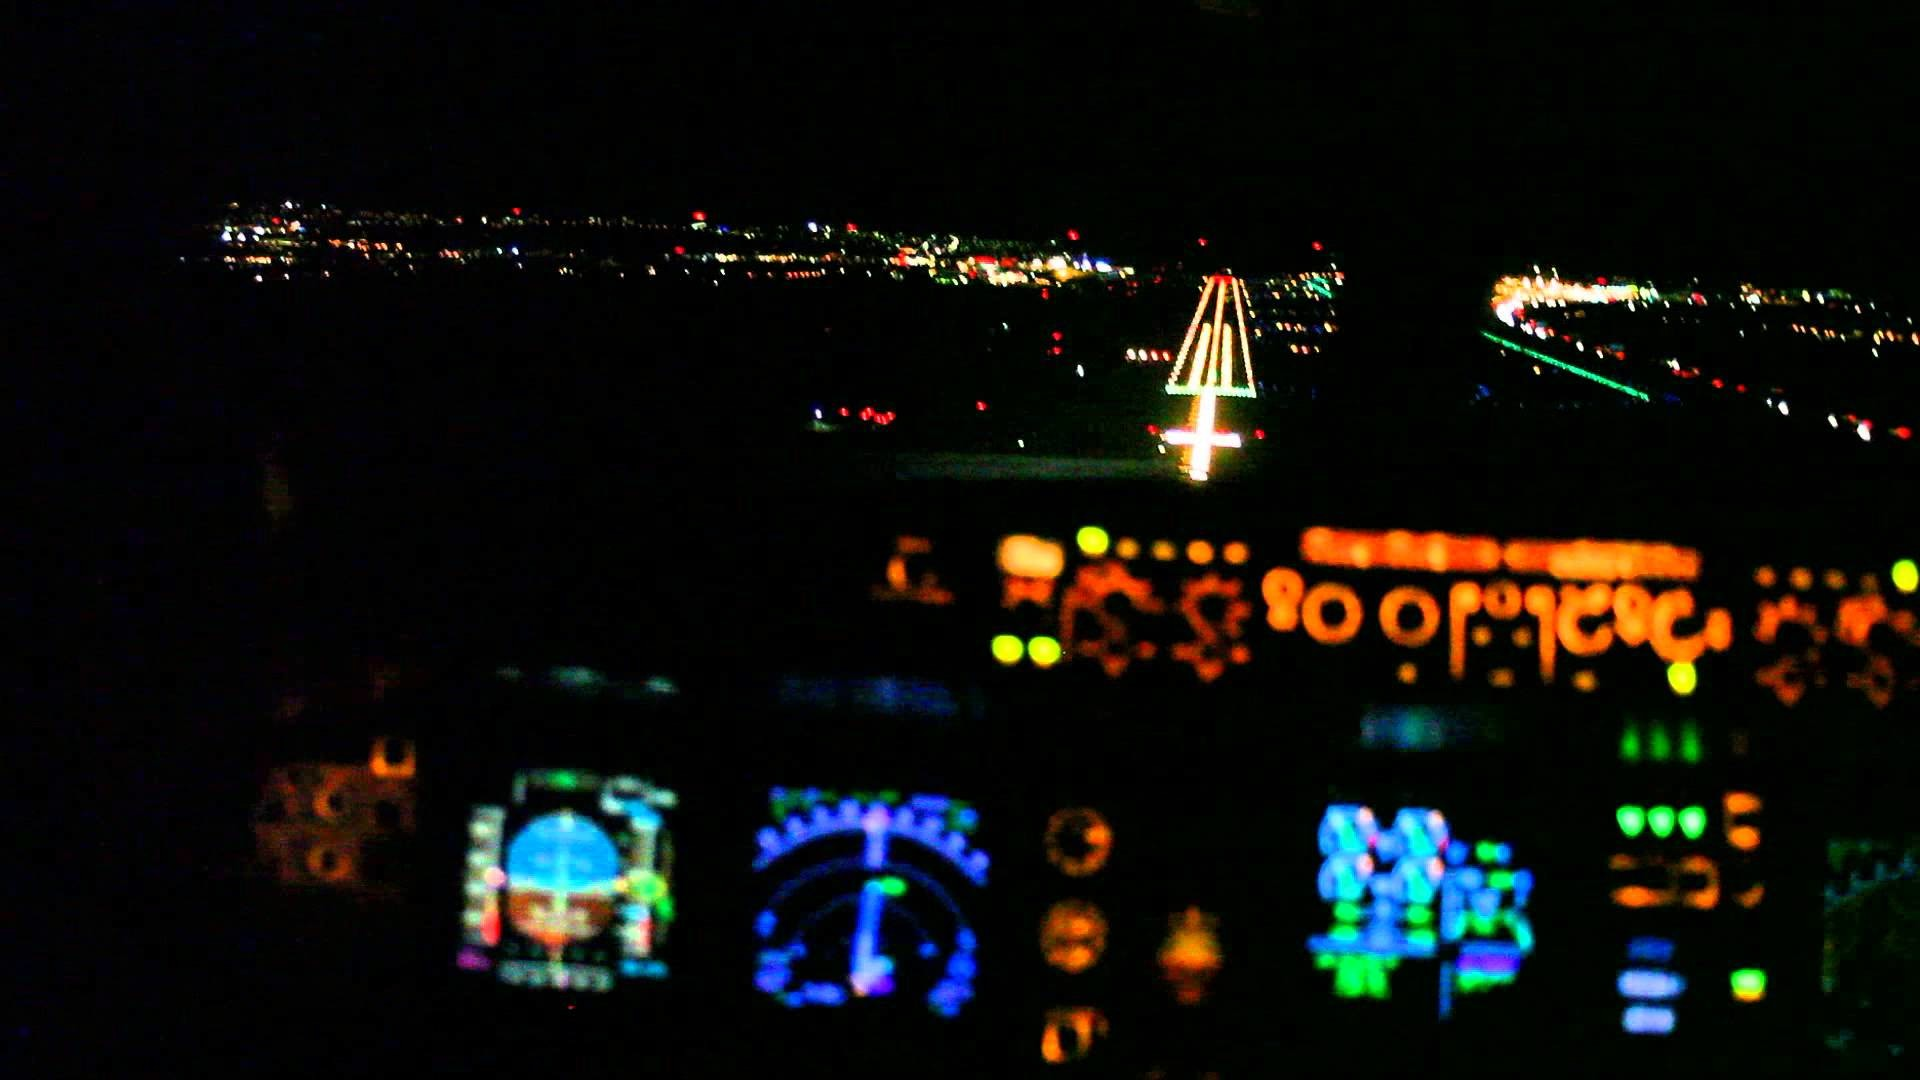 Helicopter Full Hd Wallpaper Airbus A380 Cockpit Wallpaper 68 Images